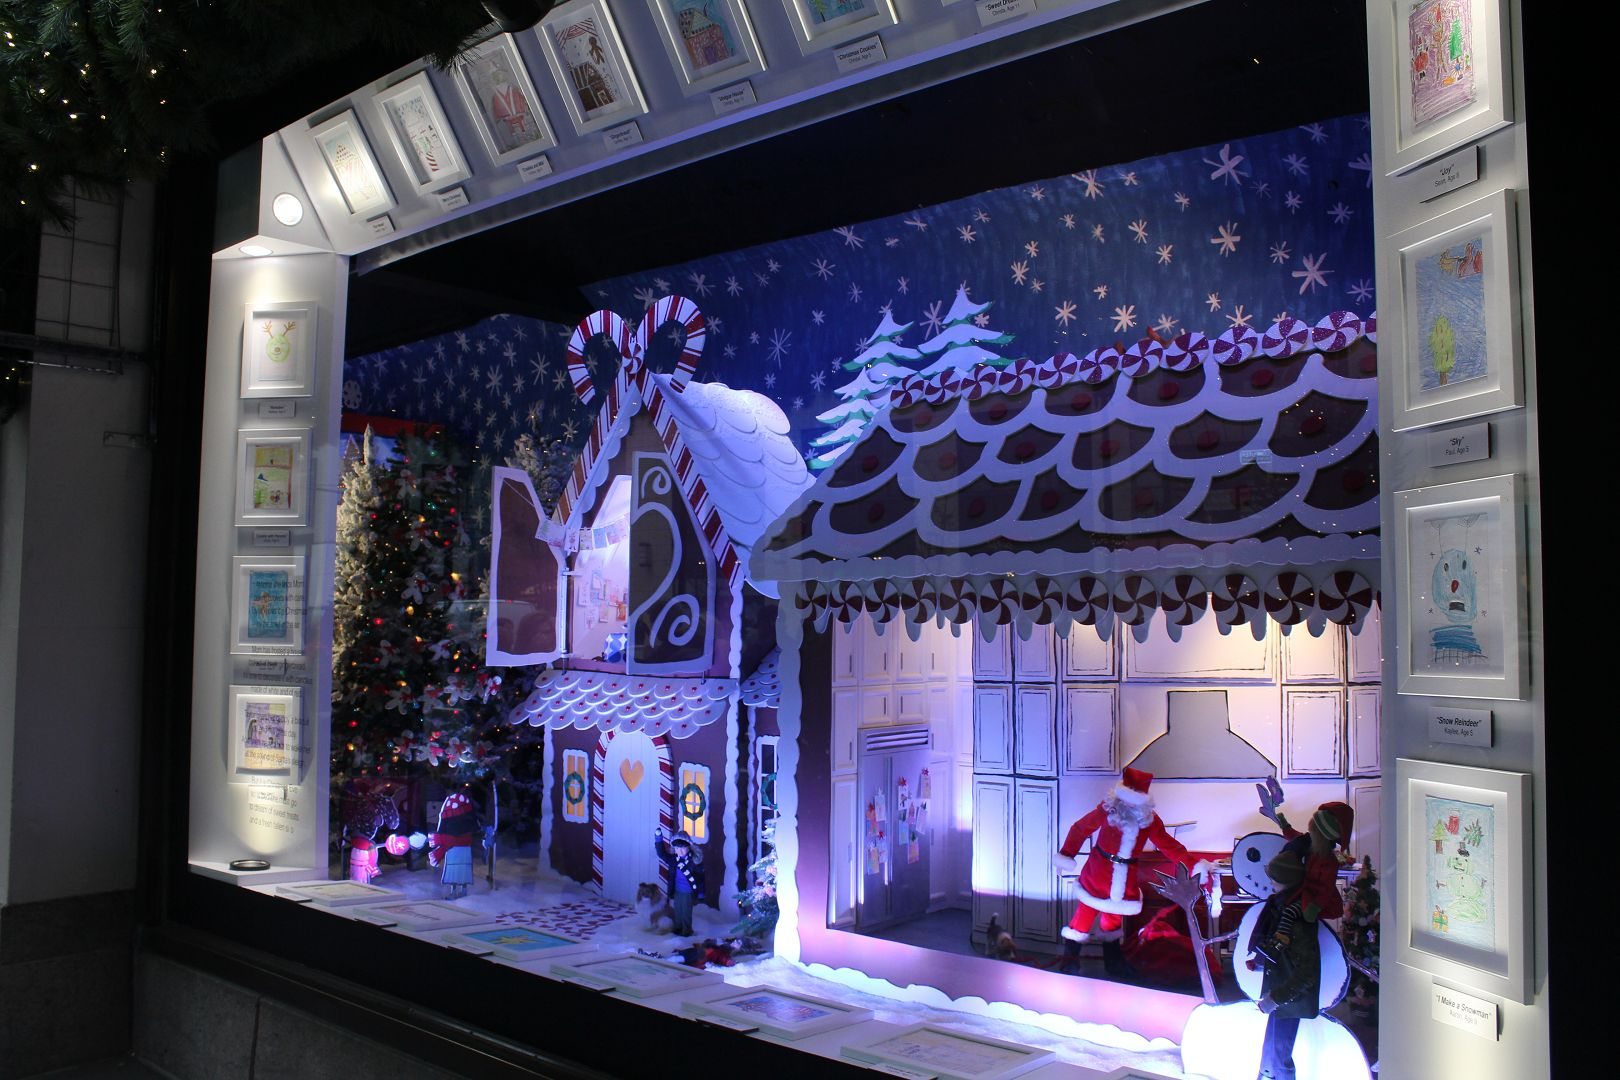 Lord & Taylor Holiday Windows 2011: The